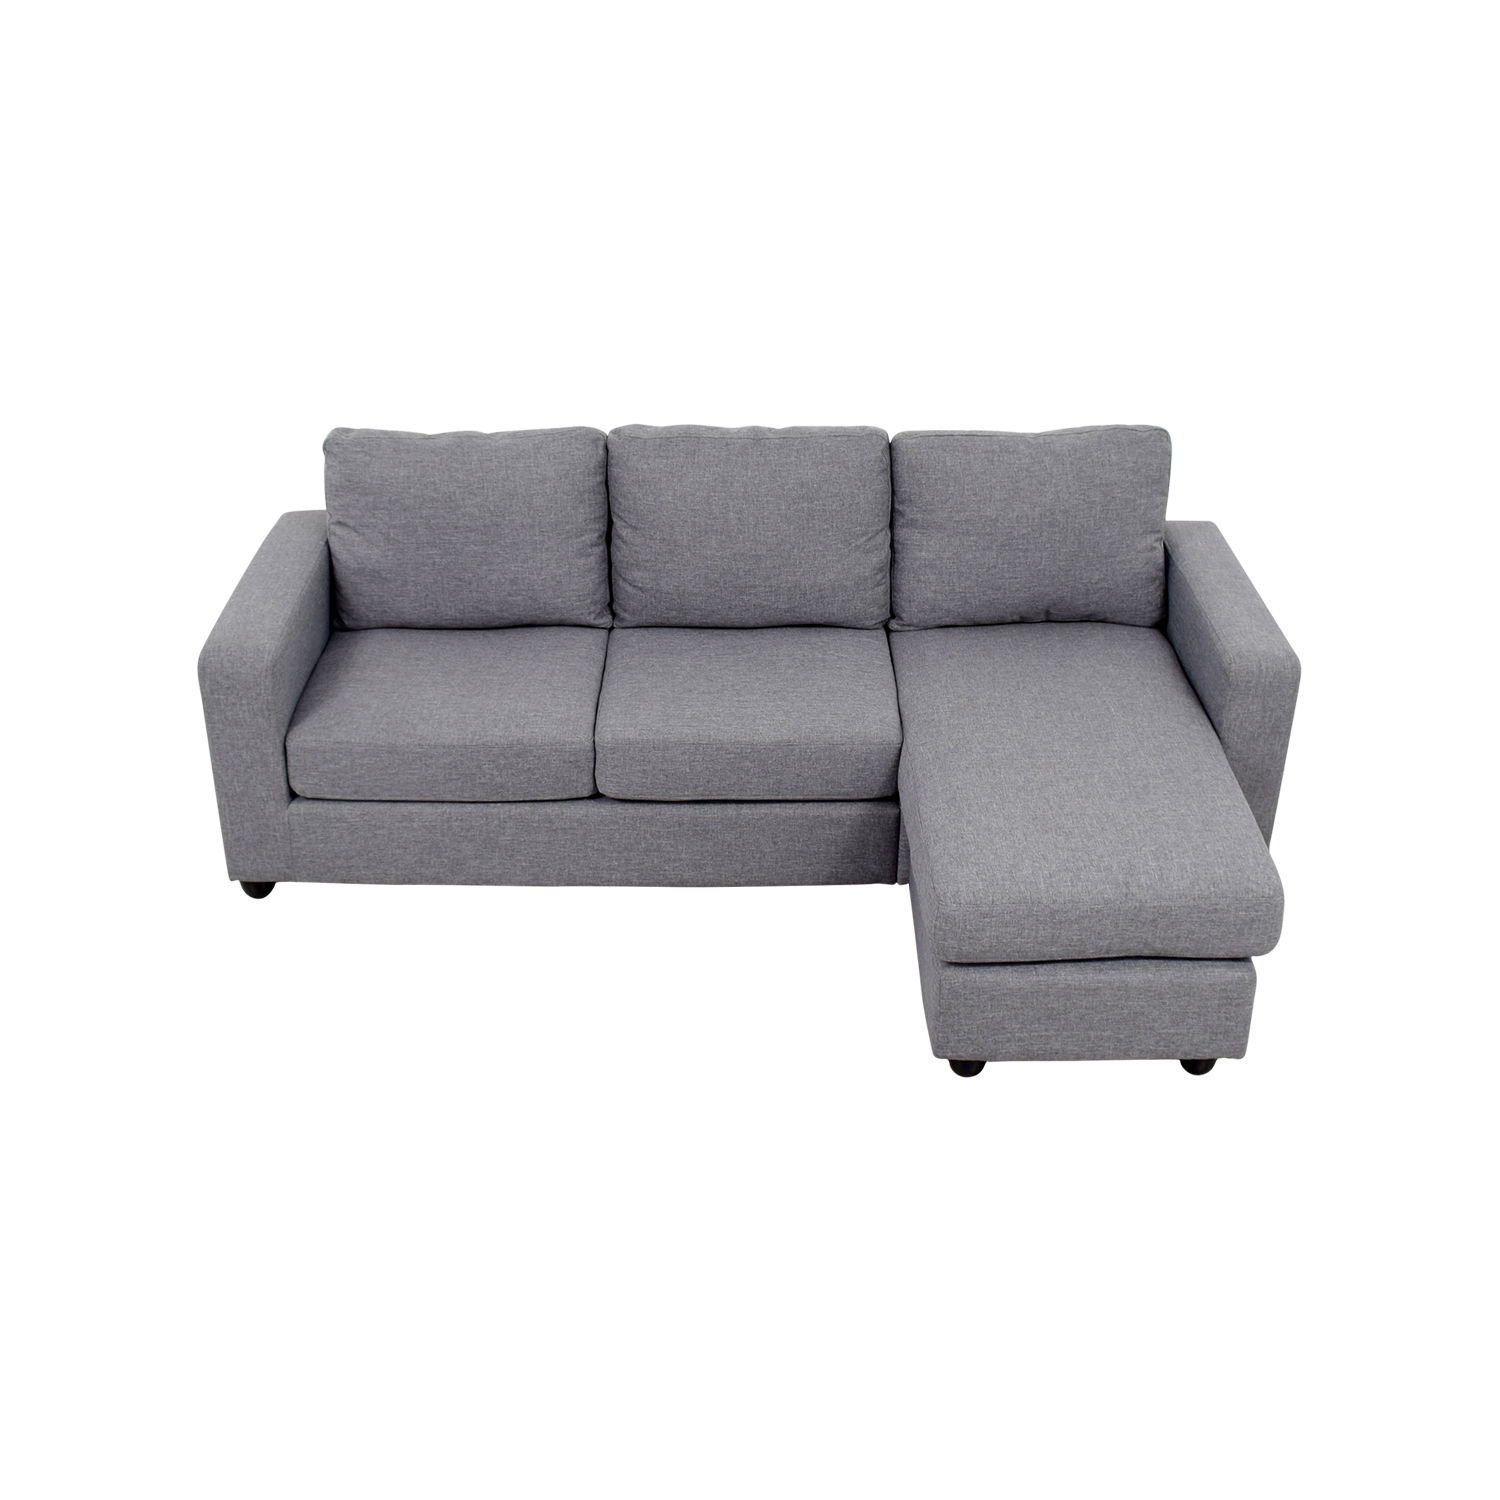 35% OFF - Grey L-Shaped Chaise Couch / Sofas